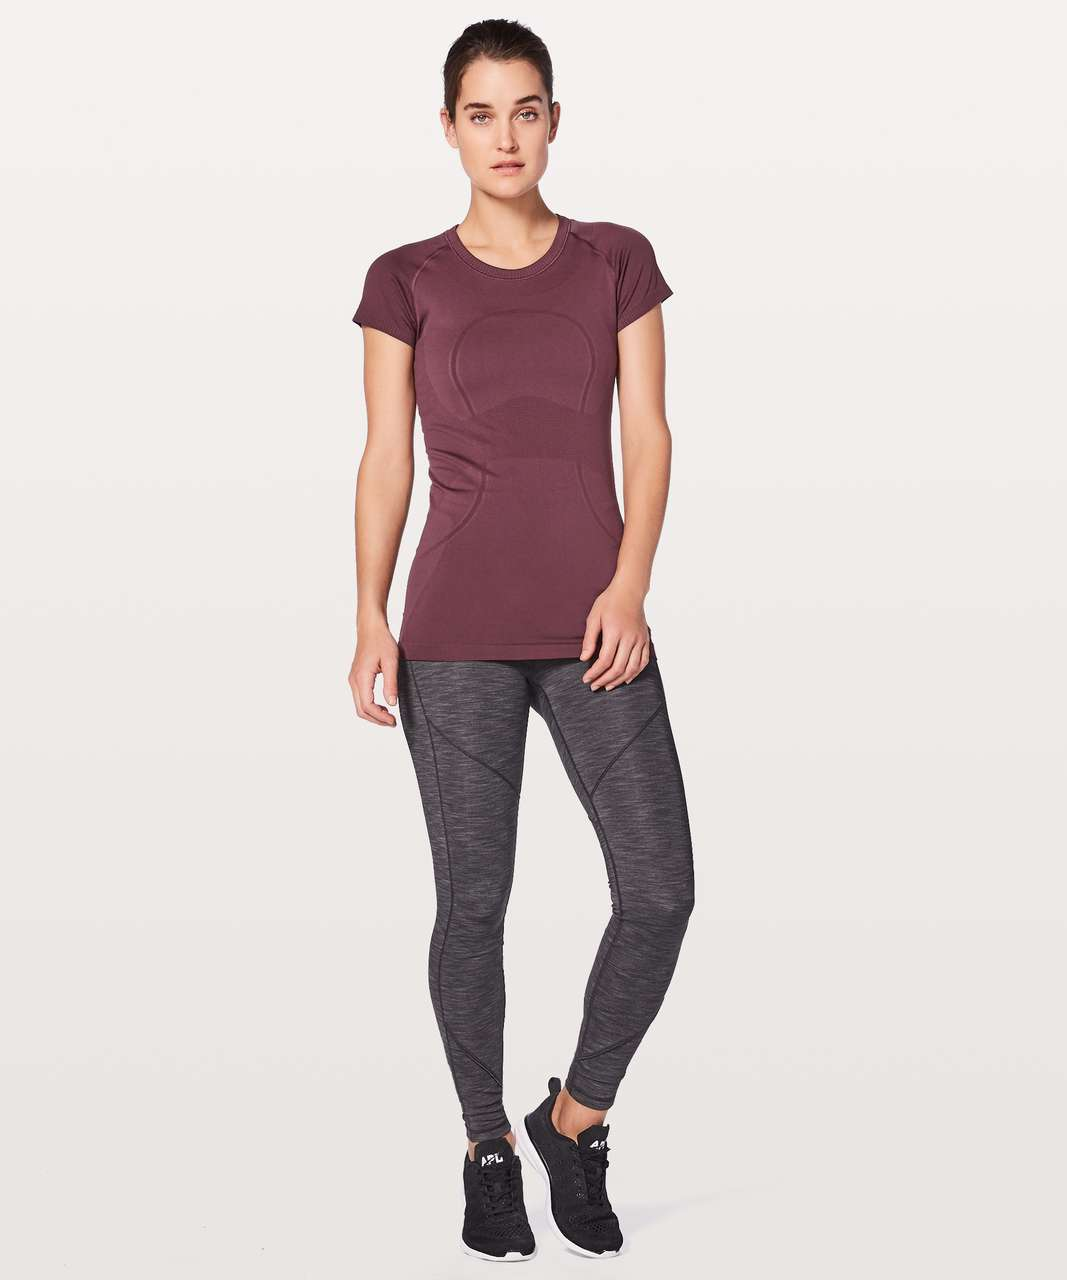 Lululemon Swiftly Tech Short Sleeve Crew - Redwood / Redwood